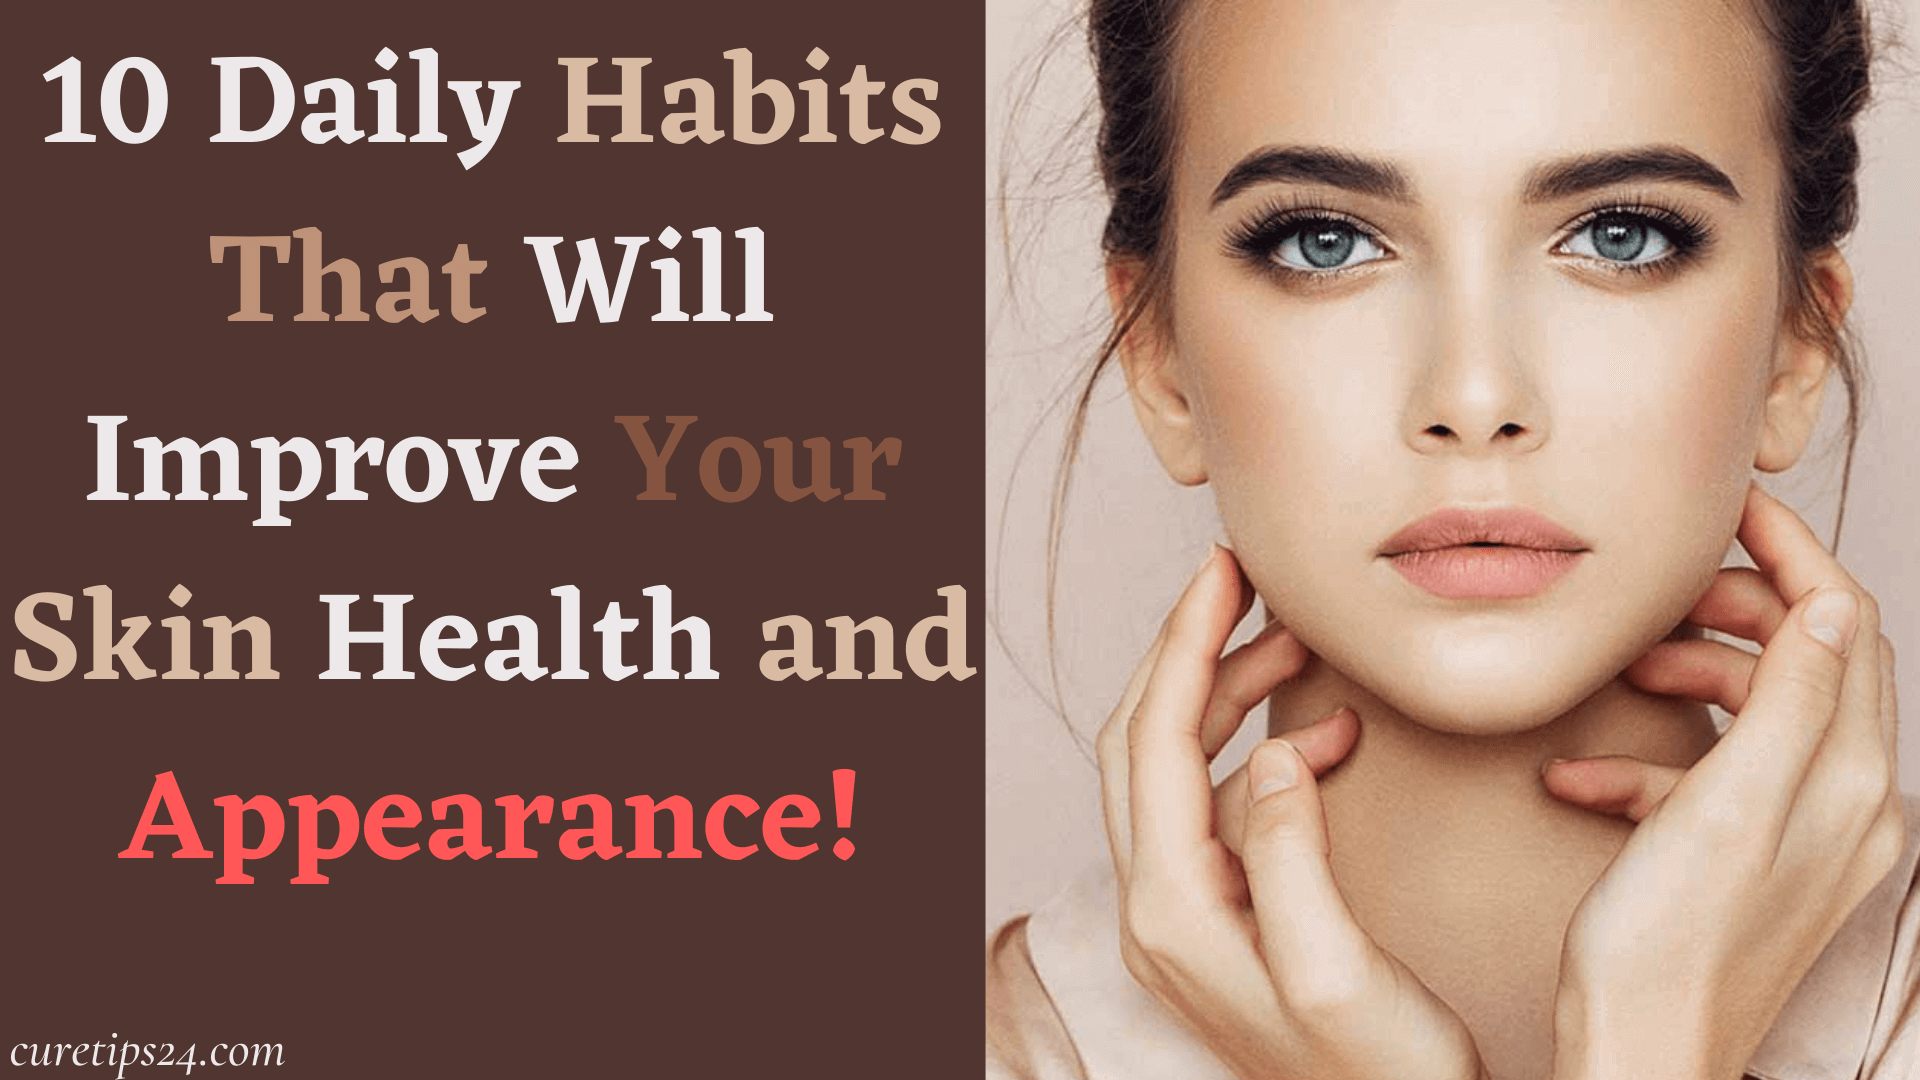 Daily Habits That Will Improve Your Skin Health